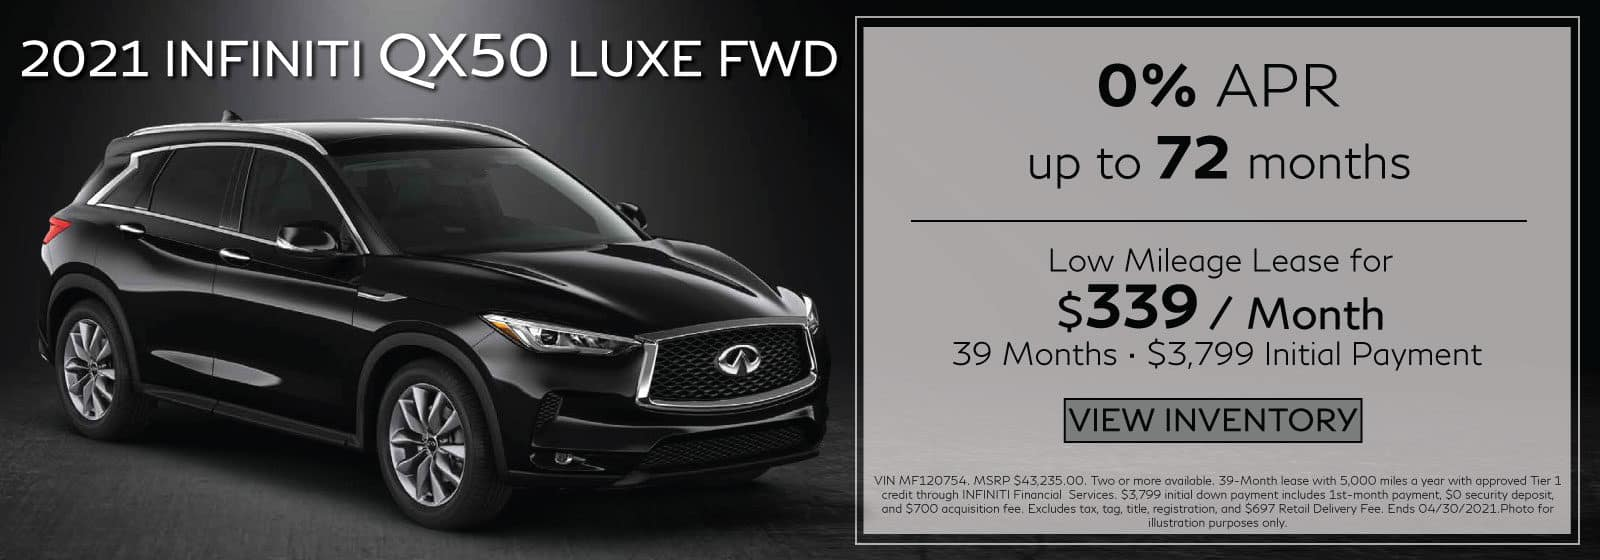 2021 QX50 Luxe. $339/mo for 39 months. $3,799 Initial Payment.